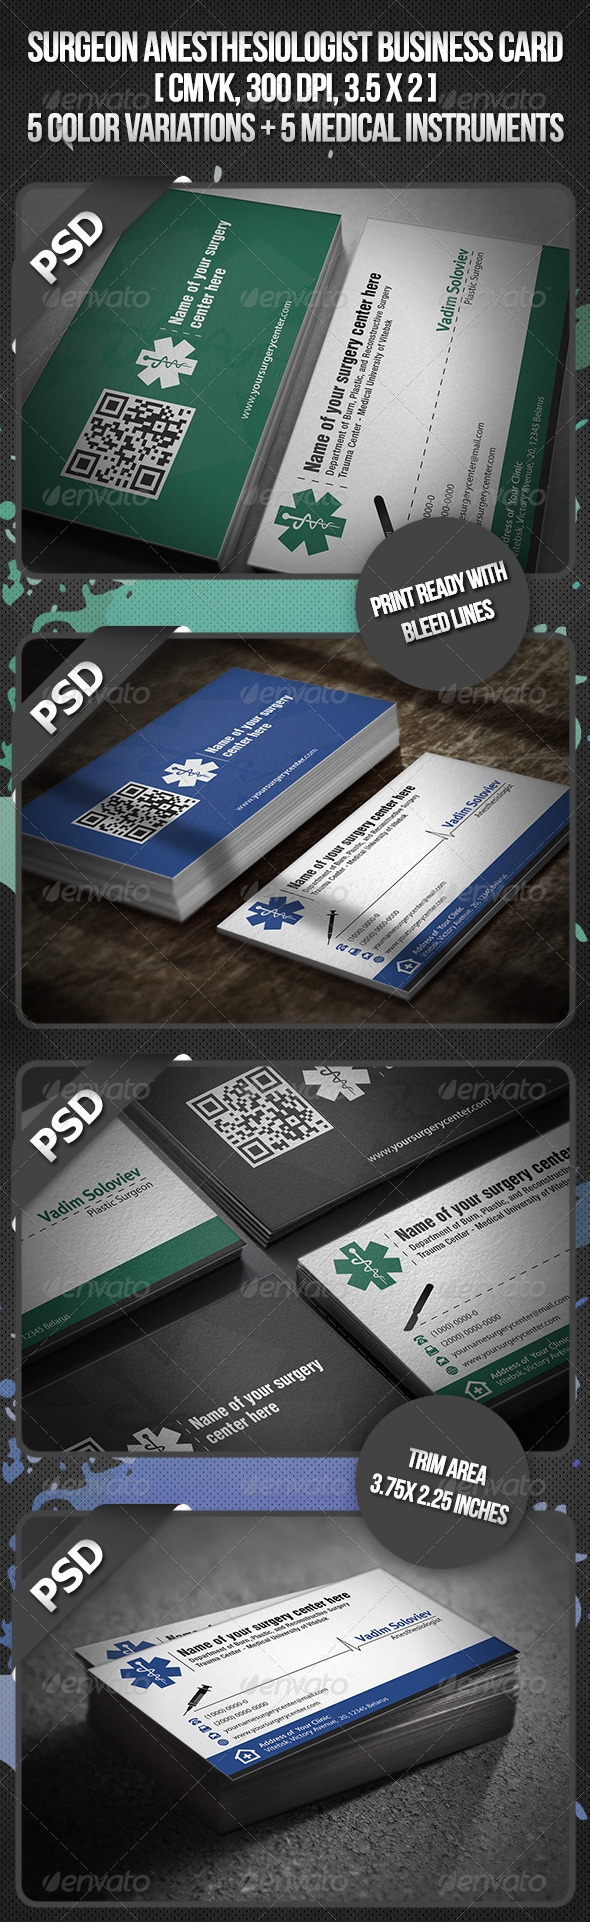 Surgeon Anesthesiologist Business Card - Industry Specific Business Cards